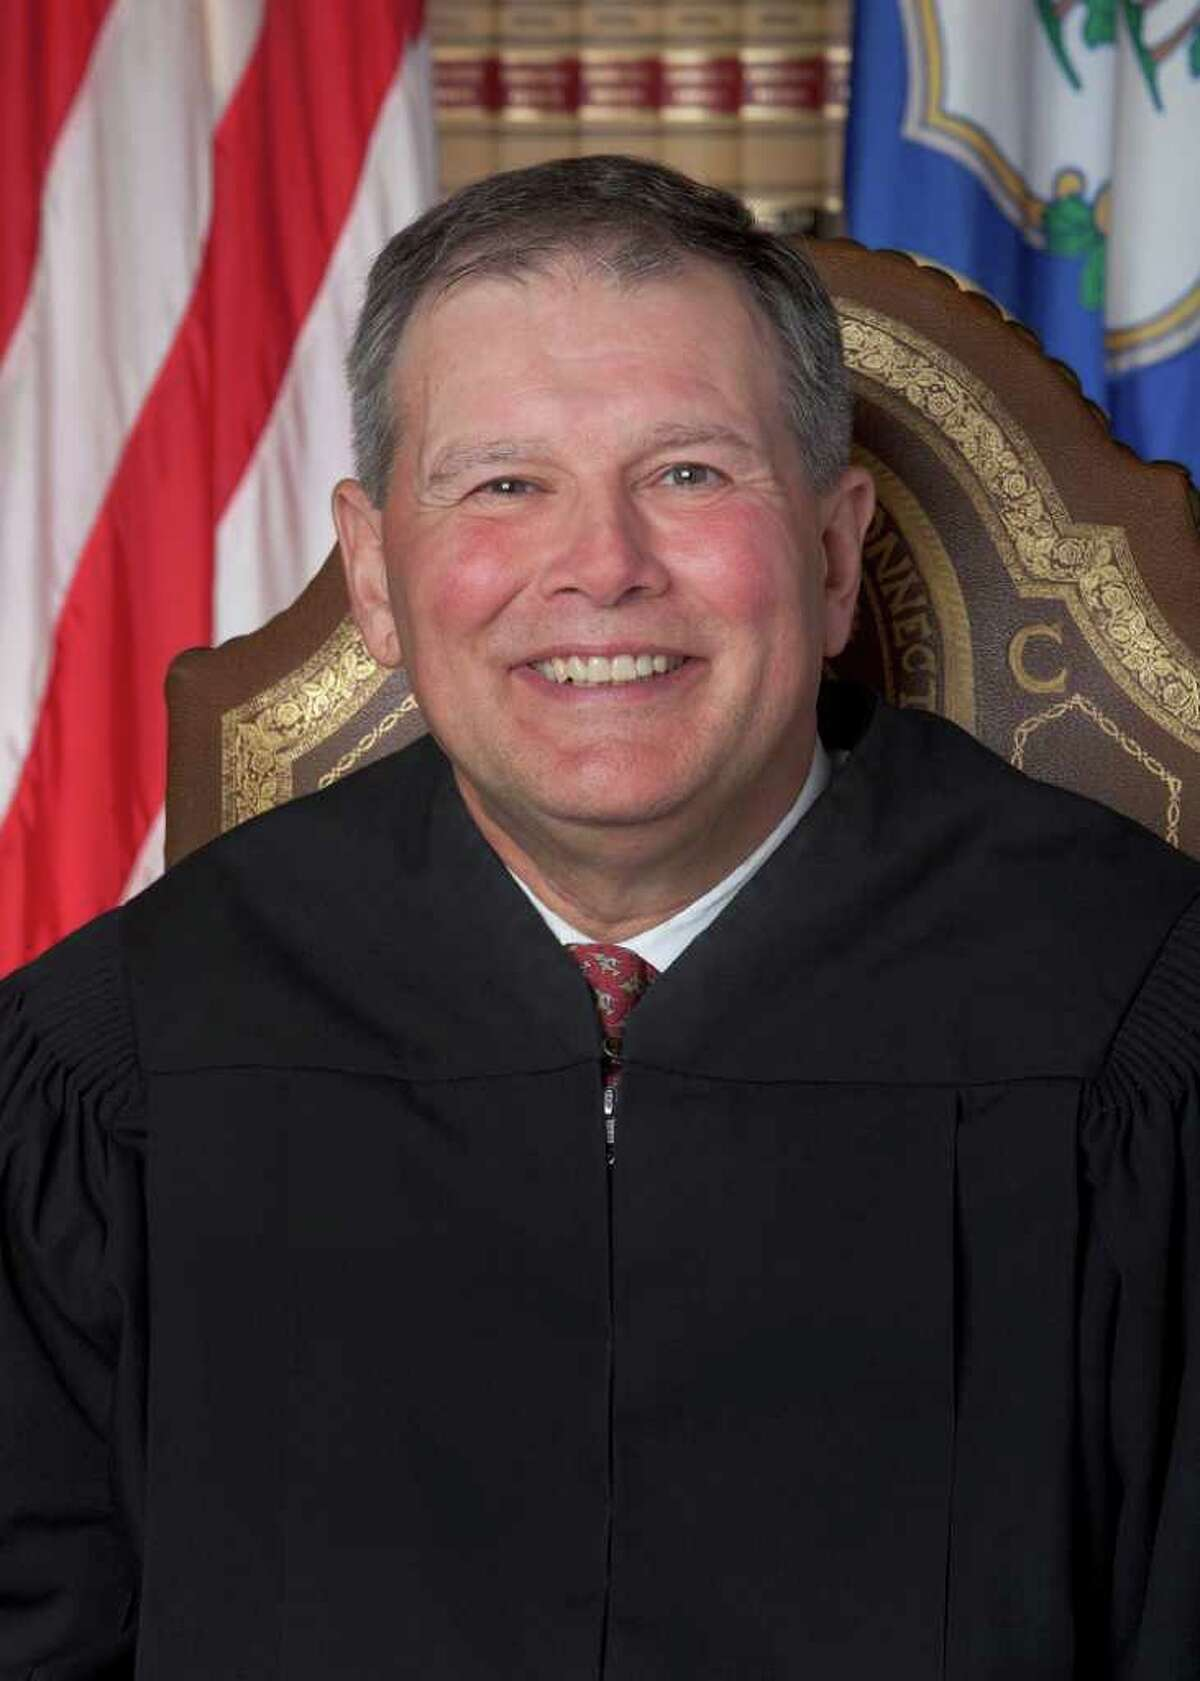 Supreme Court Justice Dennis Eveleigh, a native of Stamford who now lives in Hamden, was appointed earlier this summer to the state's highest court.